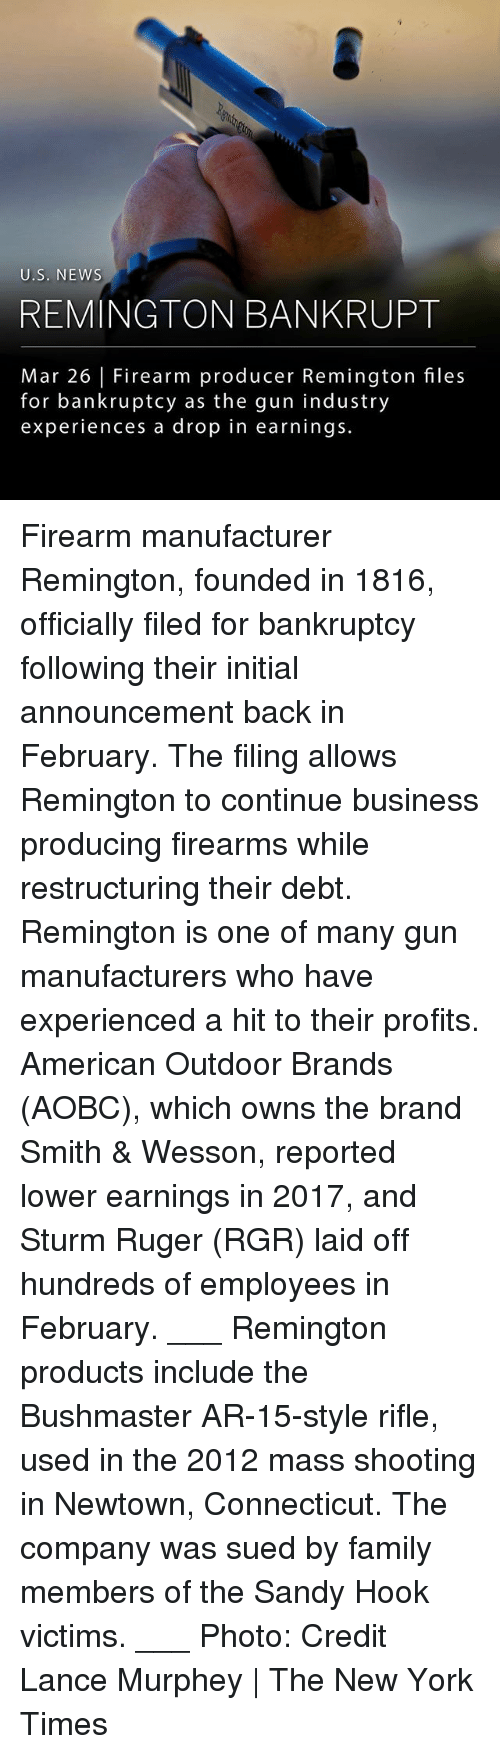 sandy hook: U.S. NEWS  REMINGTON BANKRUPT  Mar 26 Firearm producer Remington files  for bankruptcy as the gun industry  experiences a drop in earnings. Firearm manufacturer Remington, founded in 1816, officially filed for bankruptcy following their initial announcement back in February. The filing allows Remington to continue business producing firearms while restructuring their debt. Remington is one of many gun manufacturers who have experienced a hit to their profits. American Outdoor Brands (AOBC), which owns the brand Smith & Wesson, reported lower earnings in 2017, and Sturm Ruger (RGR) laid off hundreds of employees in February. ___ Remington products include the Bushmaster AR-15-style rifle, used in the 2012 mass shooting in Newtown, Connecticut. The company was sued by family members of the Sandy Hook victims. ___ Photo: Credit Lance Murphey | The New York Times